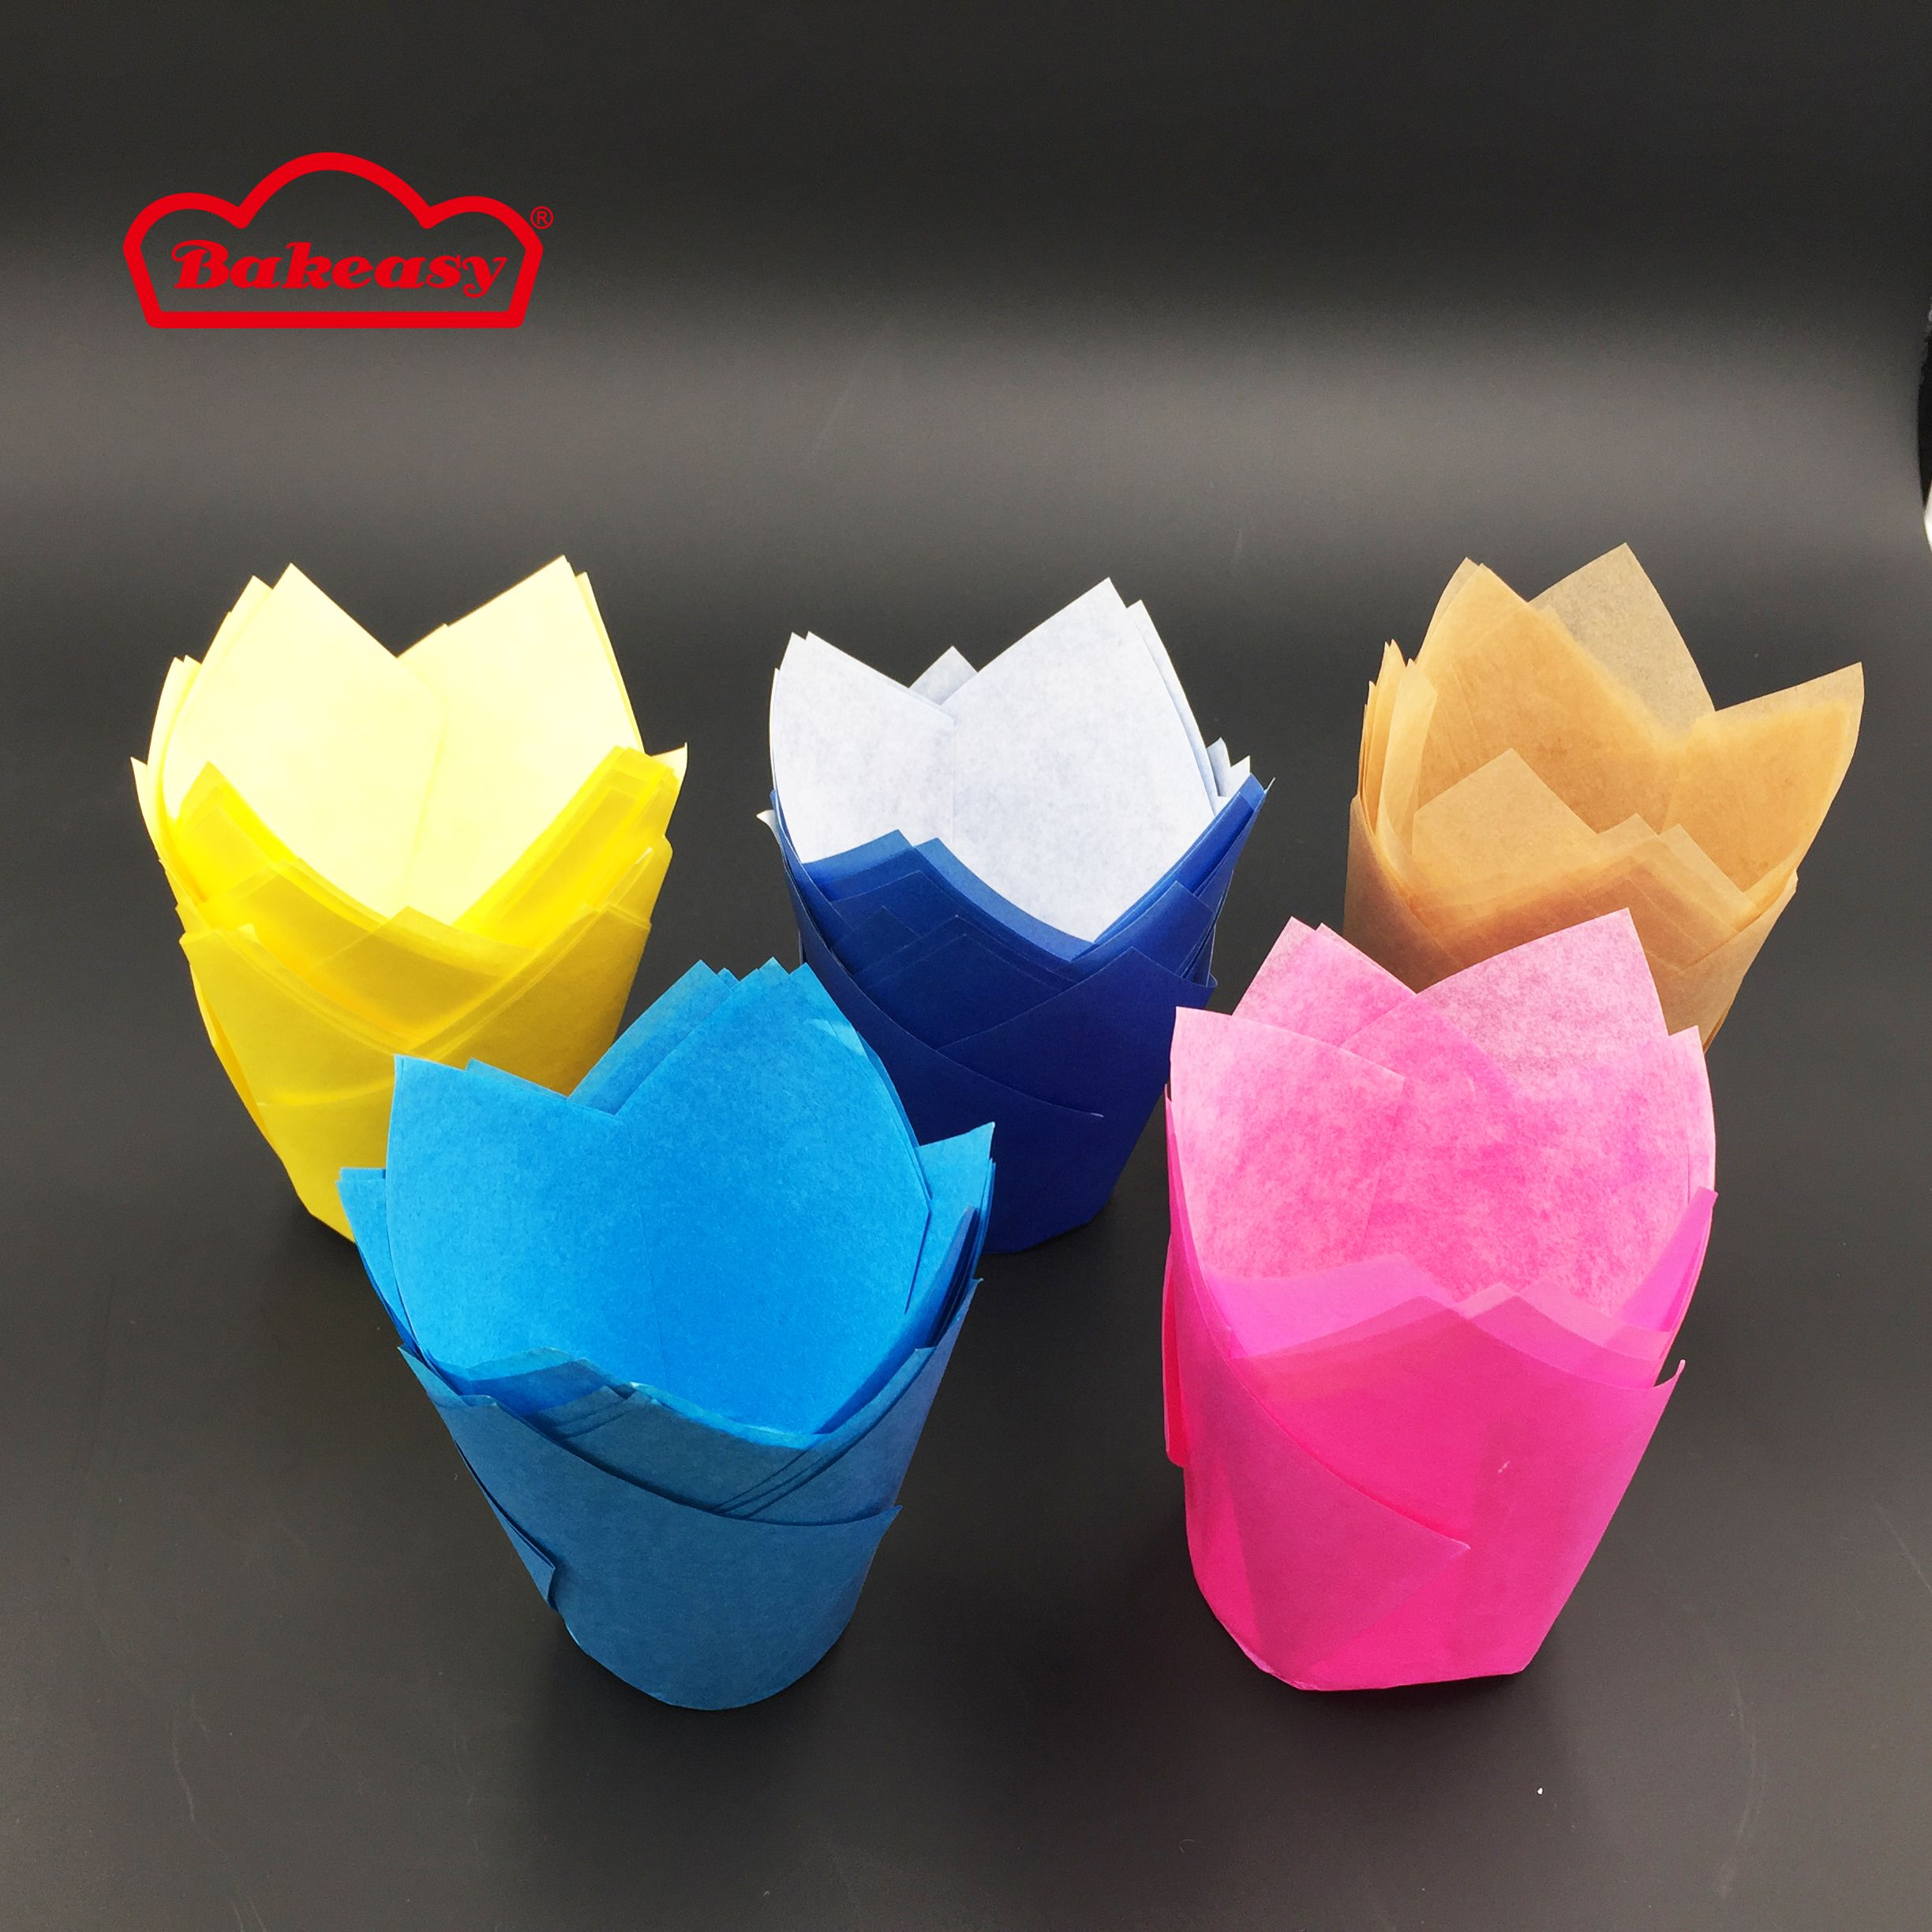 Muffin Bakeware Cups Tulip Baking Cupcake Liners With Grease Proof Paper Http Bit Ly 2xo1mwo Papertulipmuffincups Coloredpapertulipbakingcups Tulipcupcak